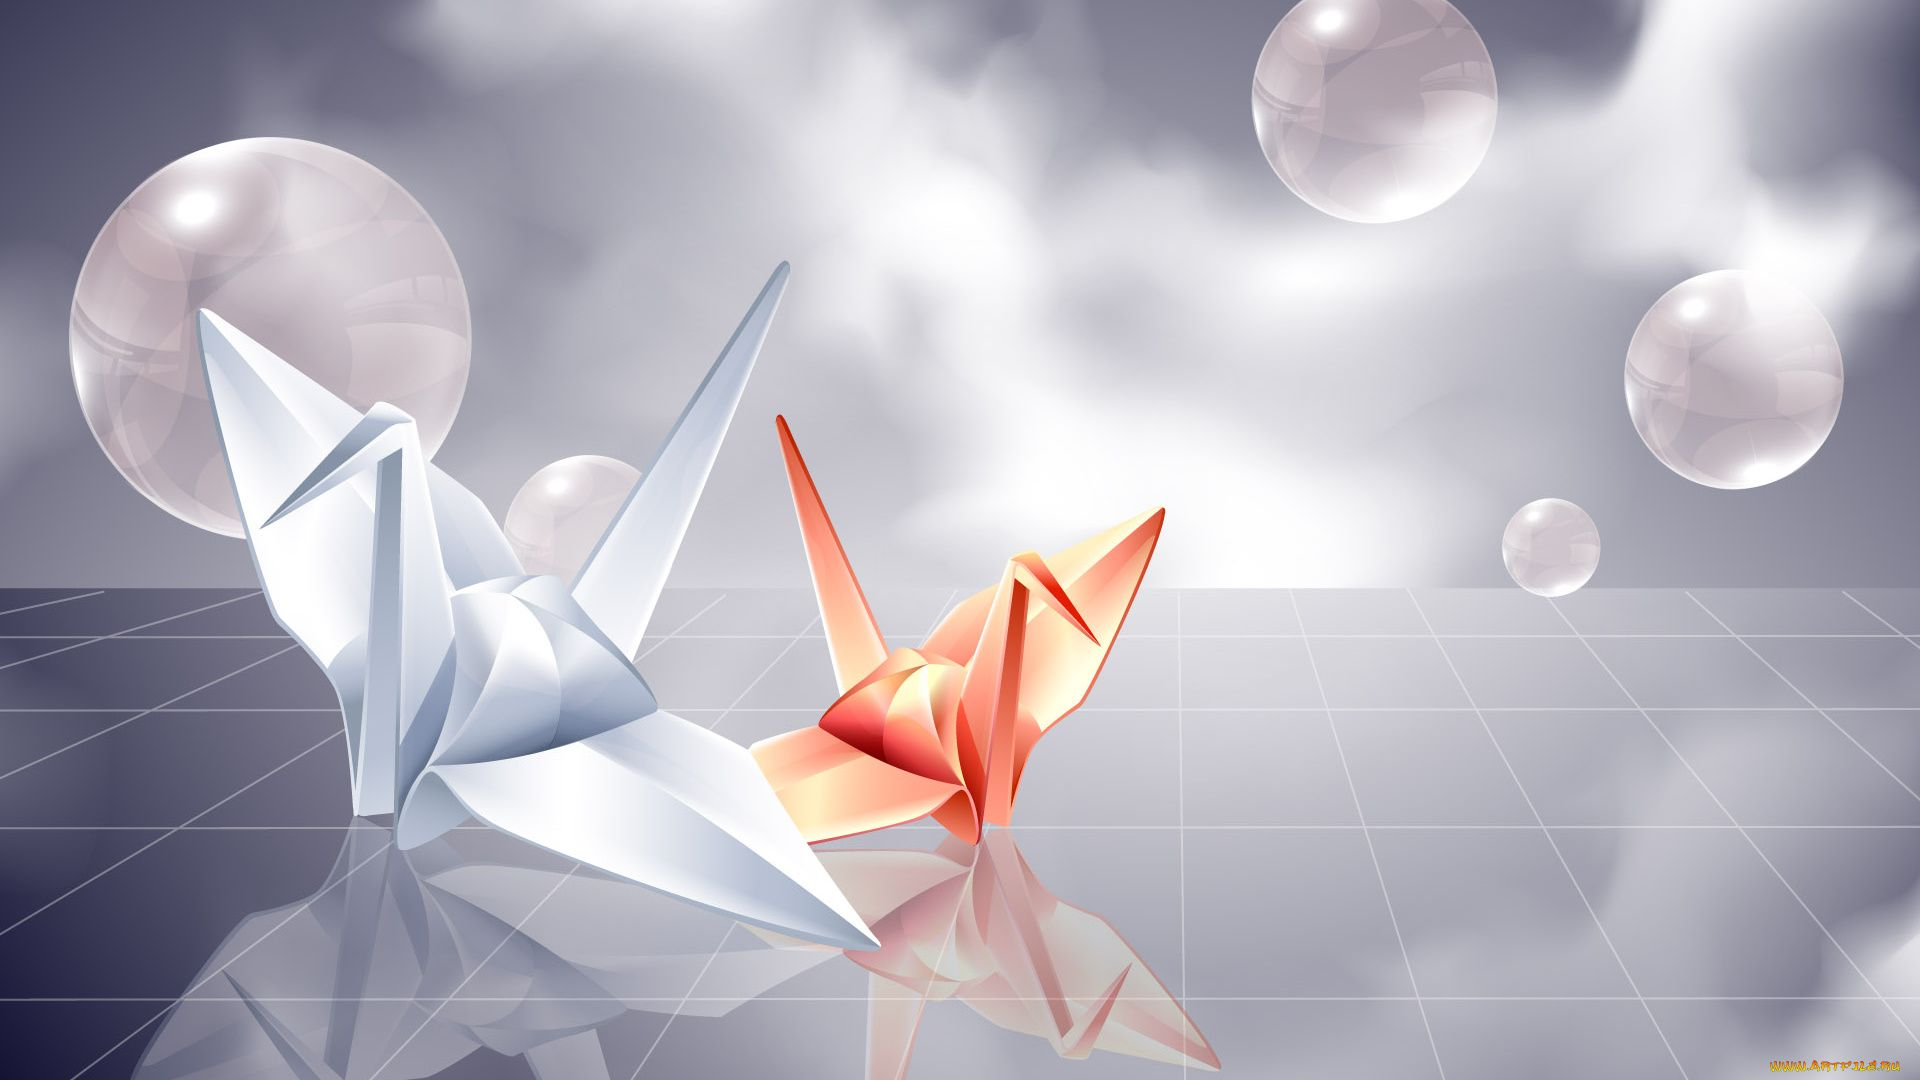 Origami picture image